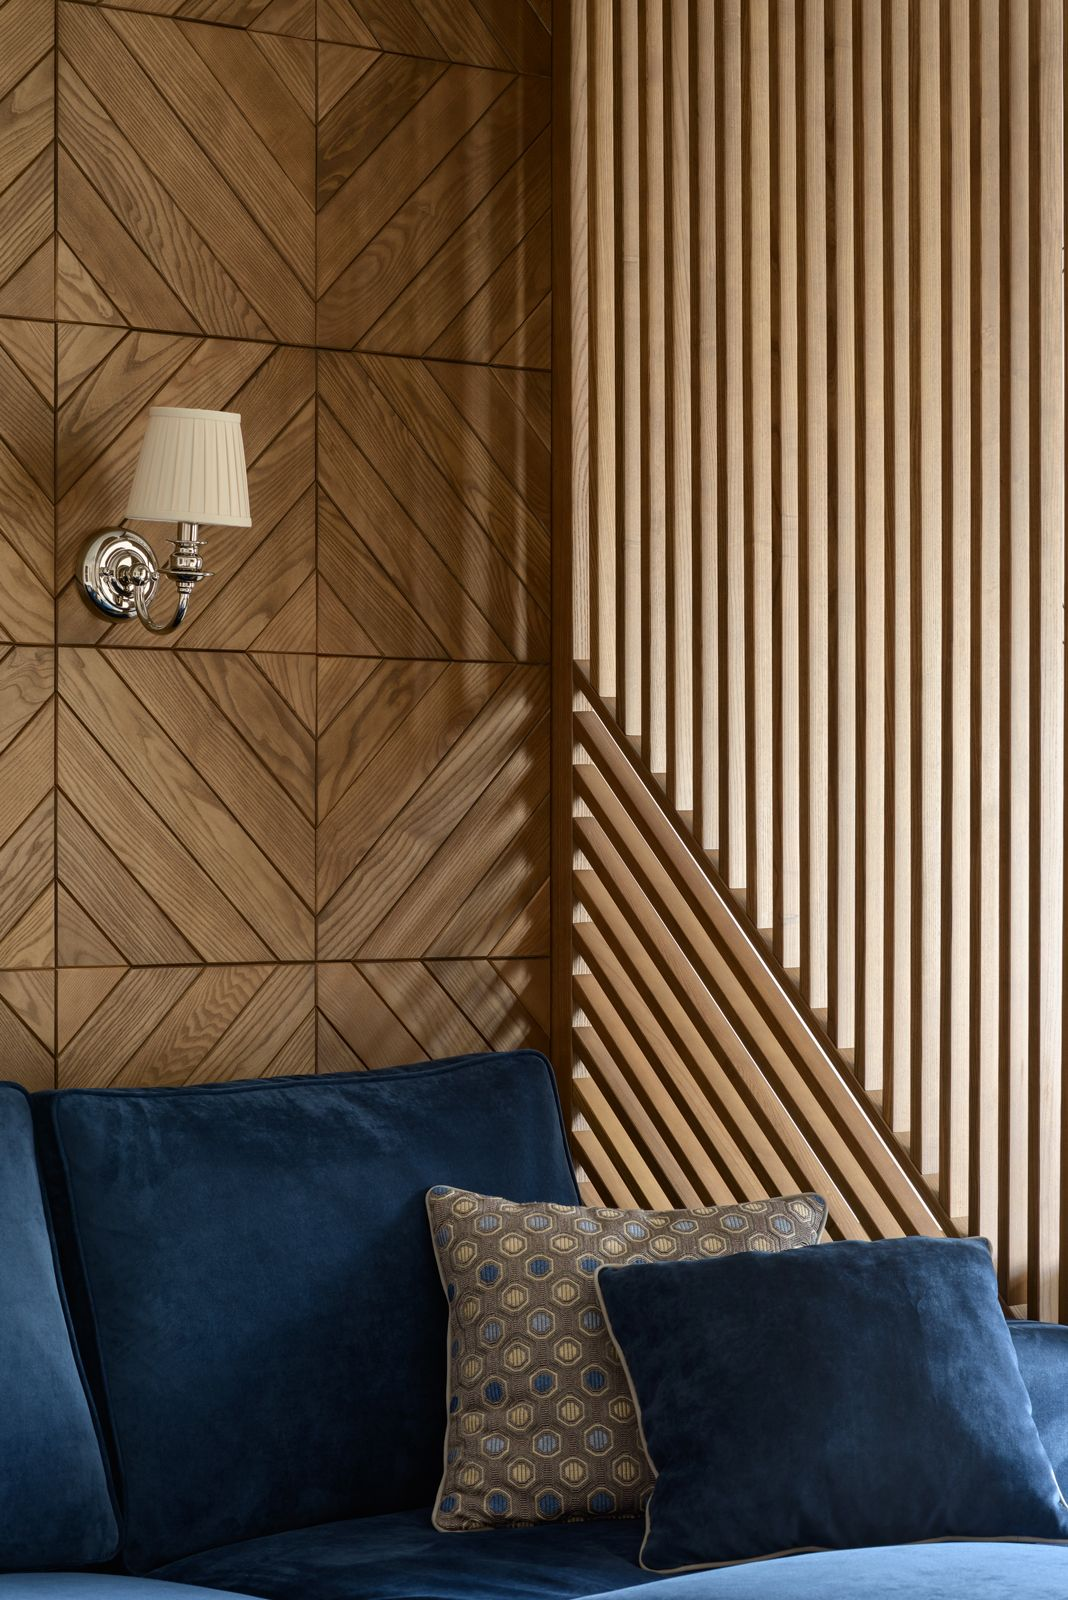 Wooden Panels 3d Rack And Partition Panels Design And Manufacturing Yourforest Material Oak A Wood Cladding Interior Wooden Wall Panels Wooden Wall Cladding